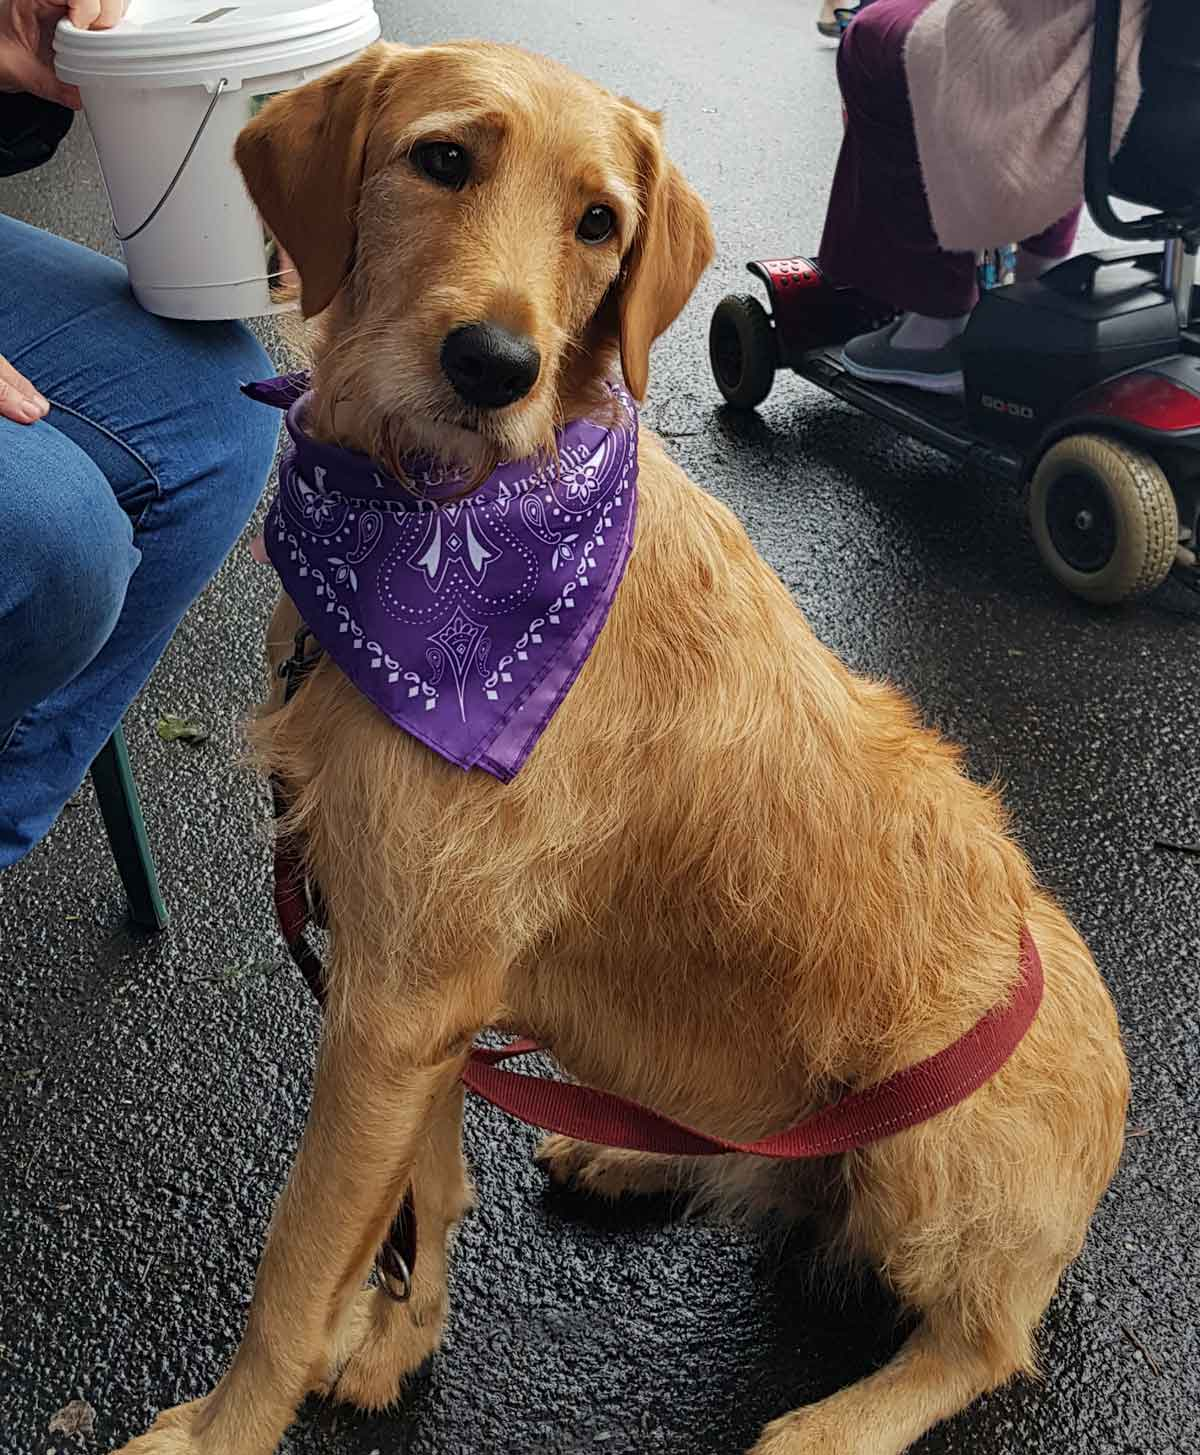 Our Mission - At PTSD Dogs we believe you never walk alone when you have a trained PTSD Assistance Dog by your side. Gentle, intuitive, intelligent and full of unconditional love. They can provide a sense of calm amidst turmoil, safety amid confusion and comfort in sadness.Learn More